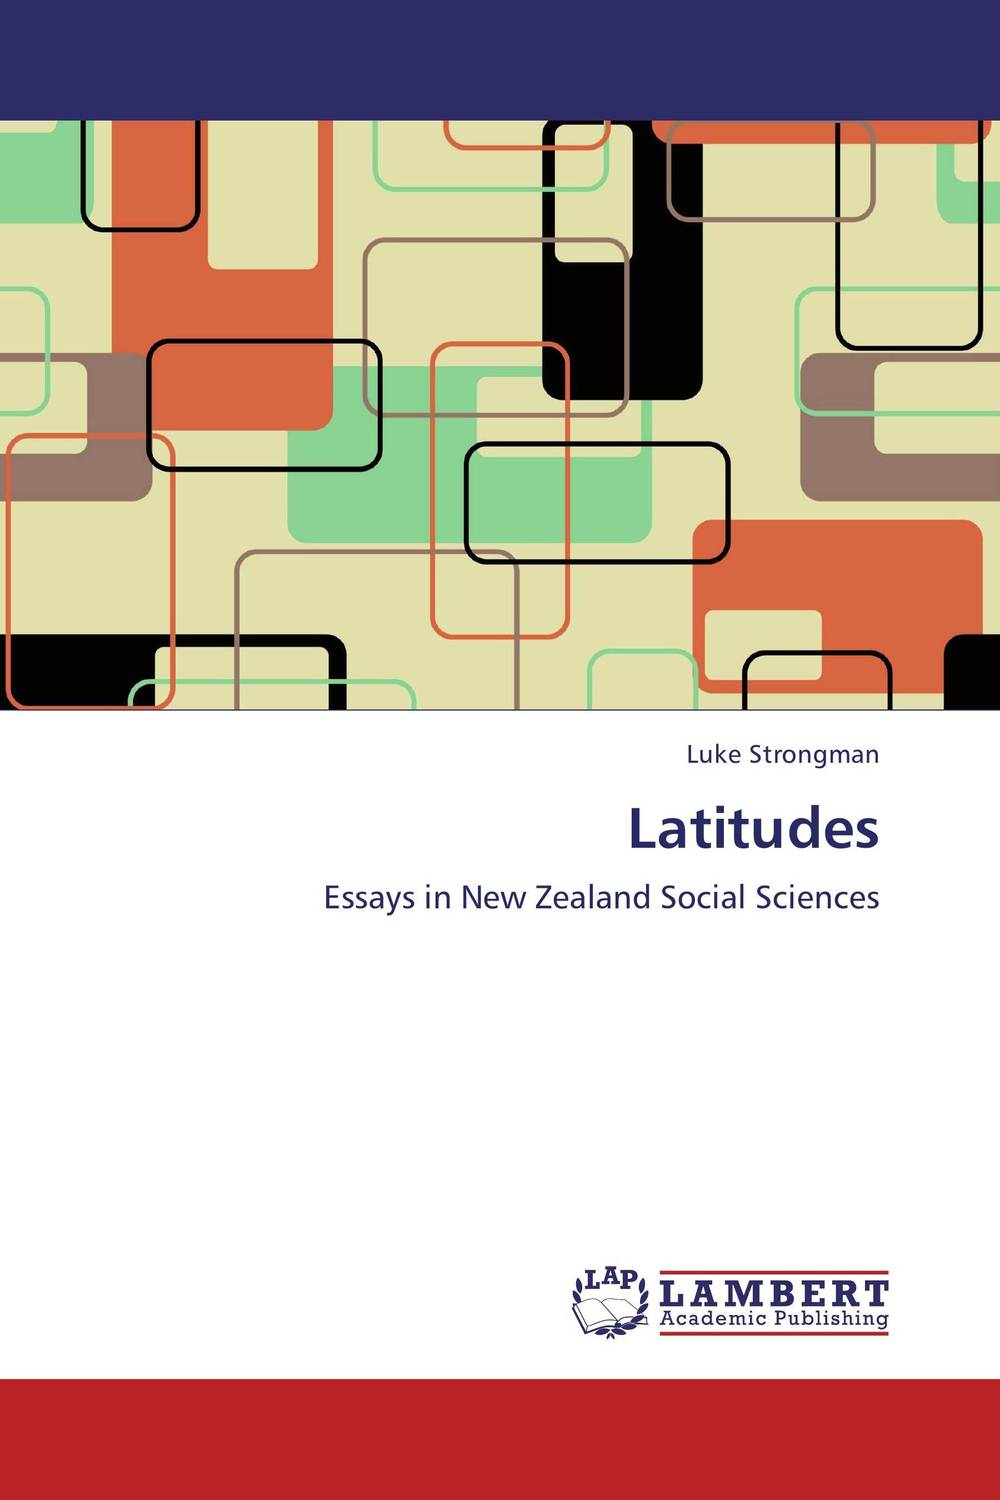 Latitudes katherine mcknight s common core literacy for ela history social studies and the humanities strategies to deepen content knowledge grades 6 12